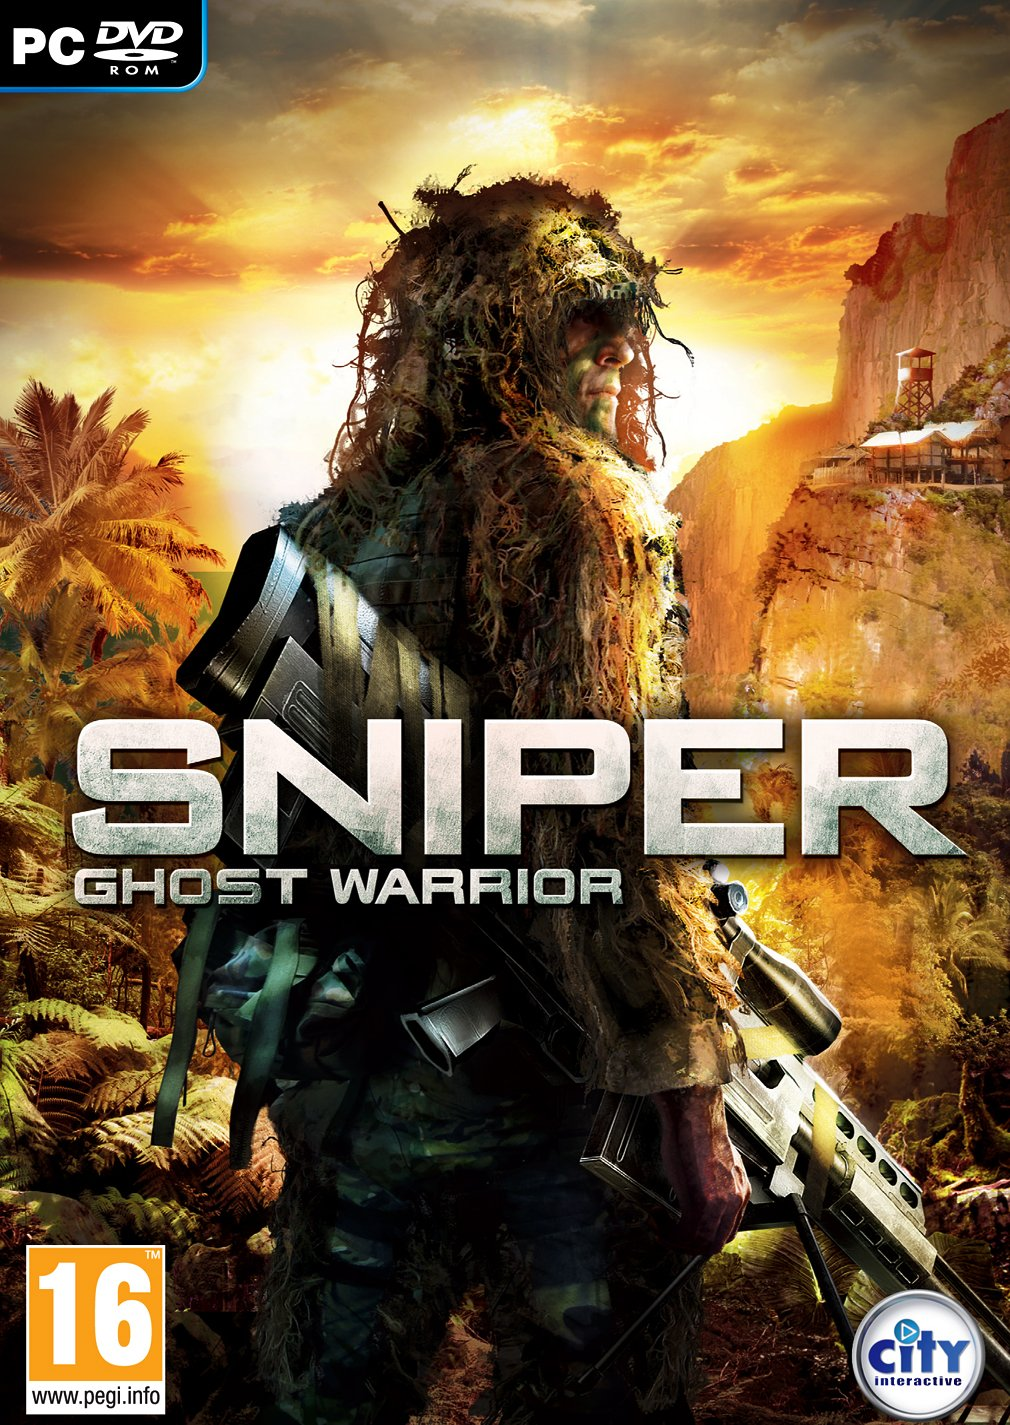 بازی Sniper Ghost Warrior 1 برای PC